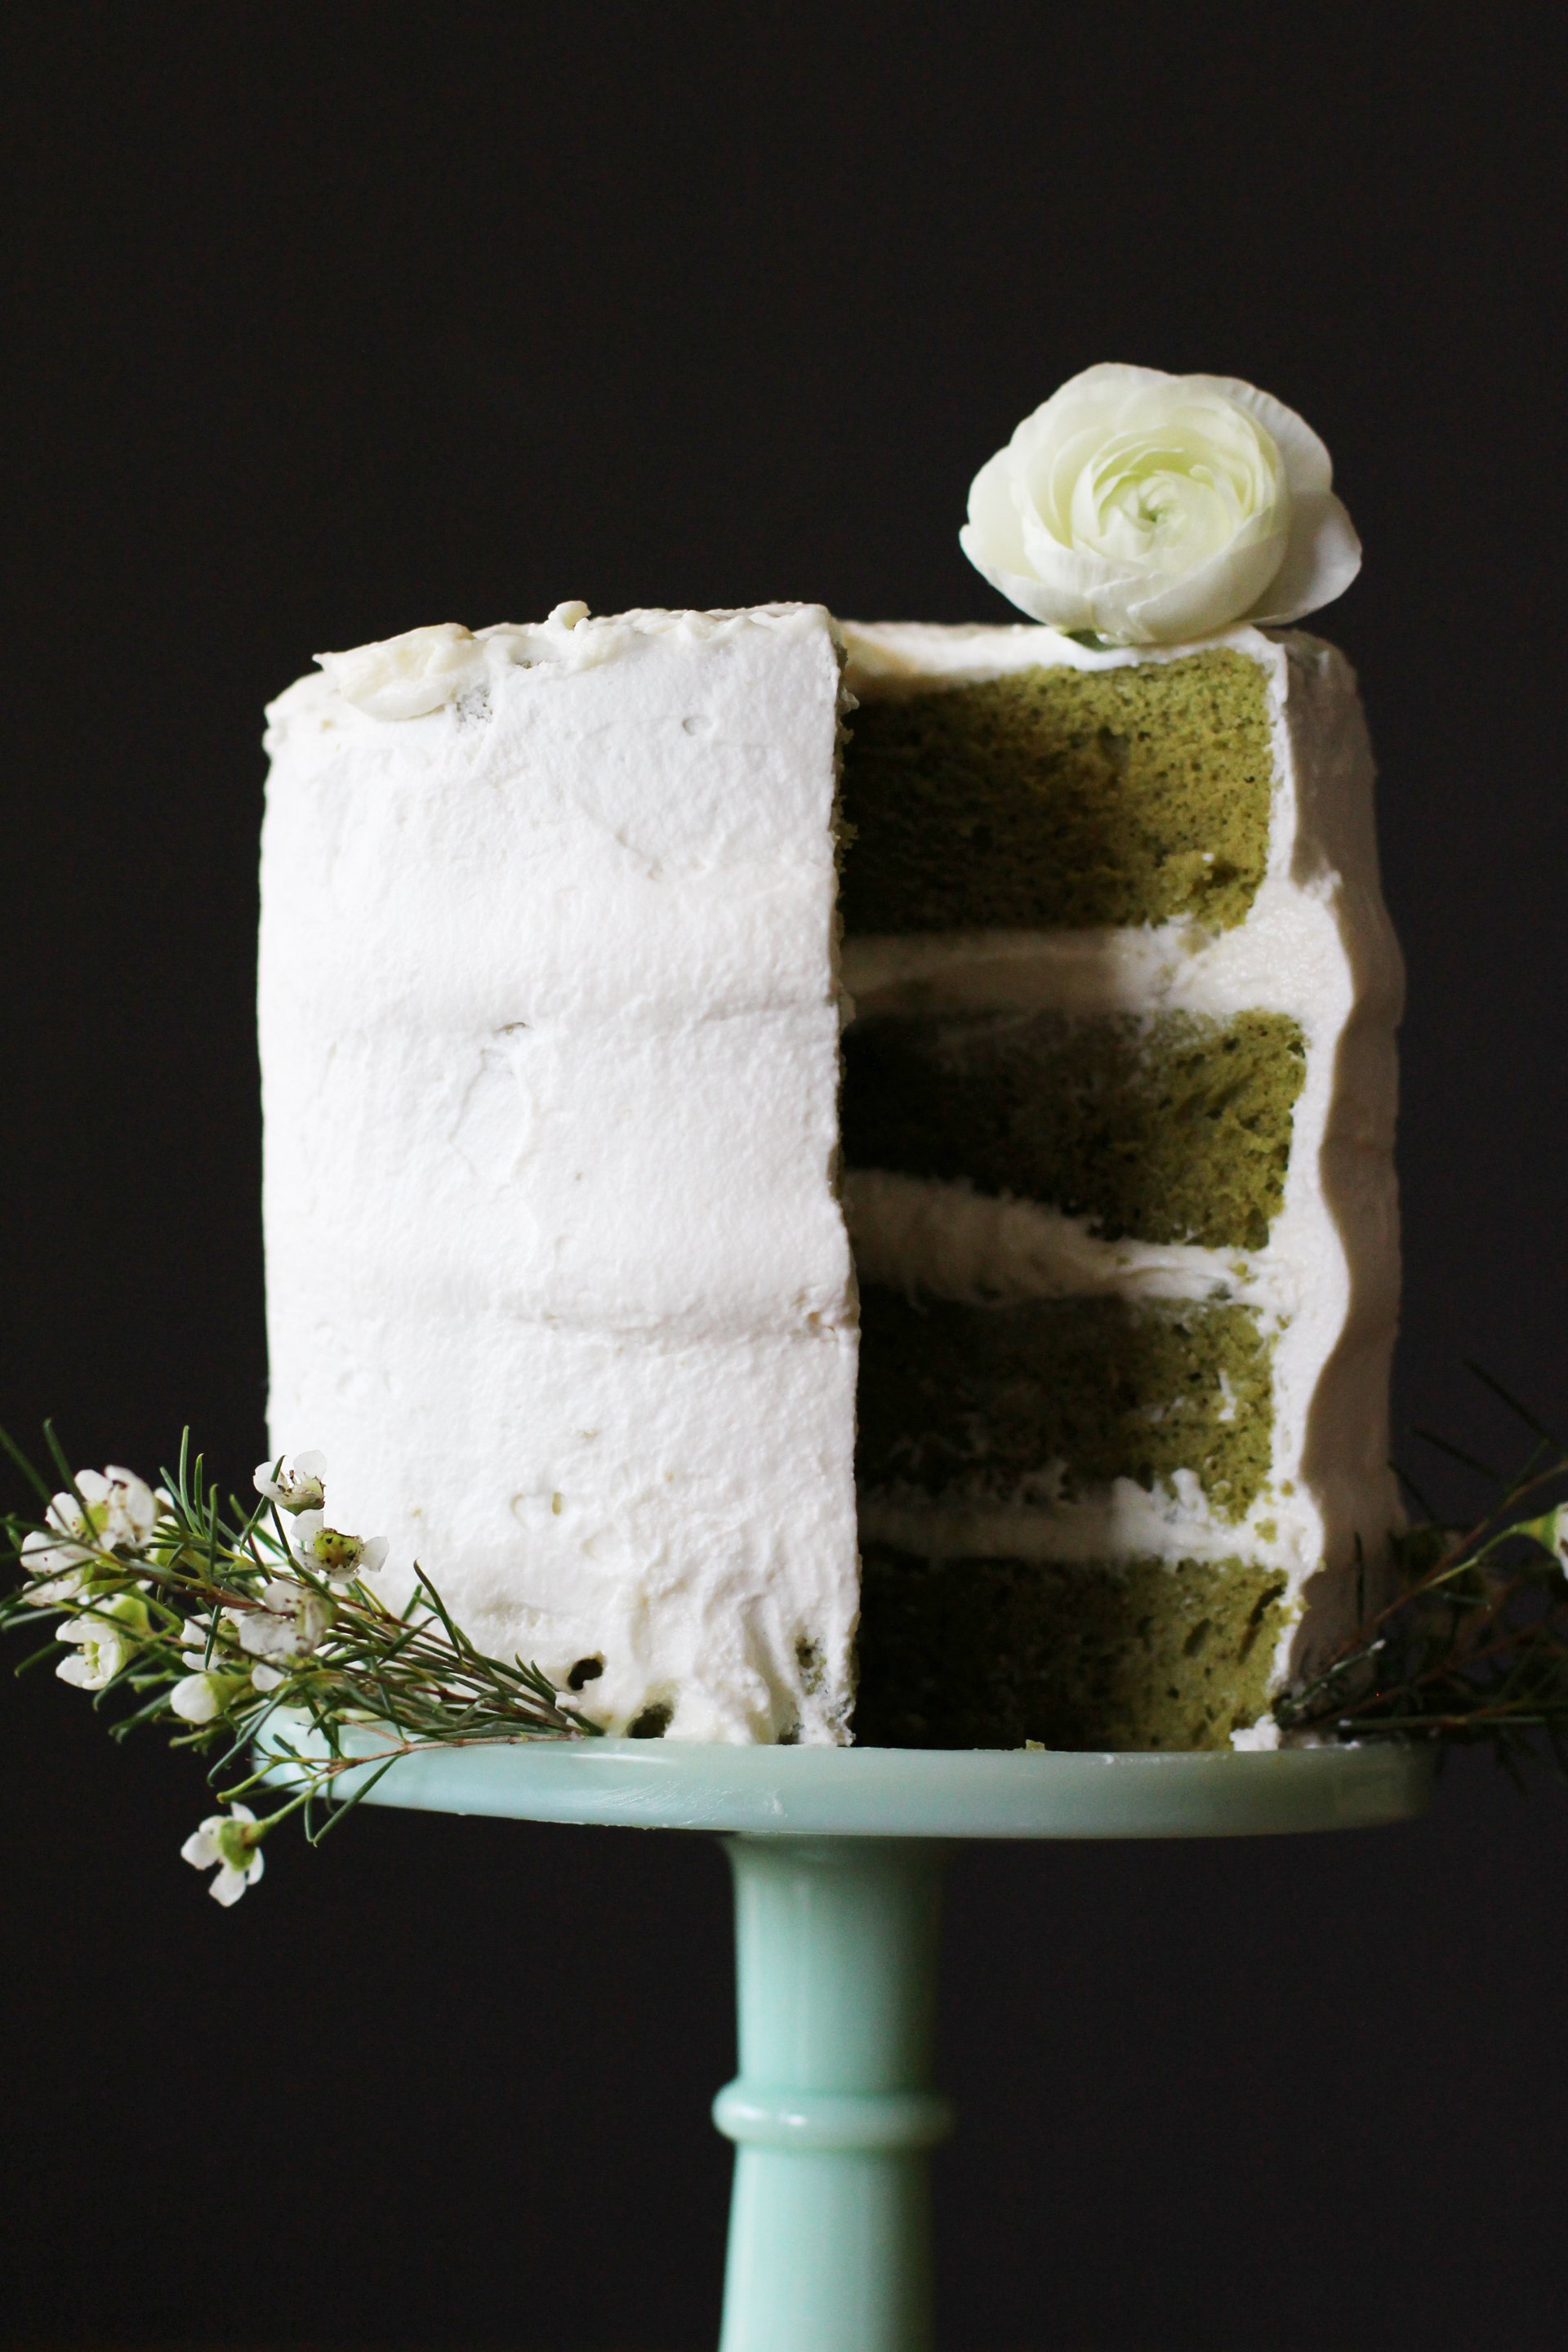 Cake With Chocolate Whipped Cream Frosting : Matcha Green Tea and White Chocolate Cake